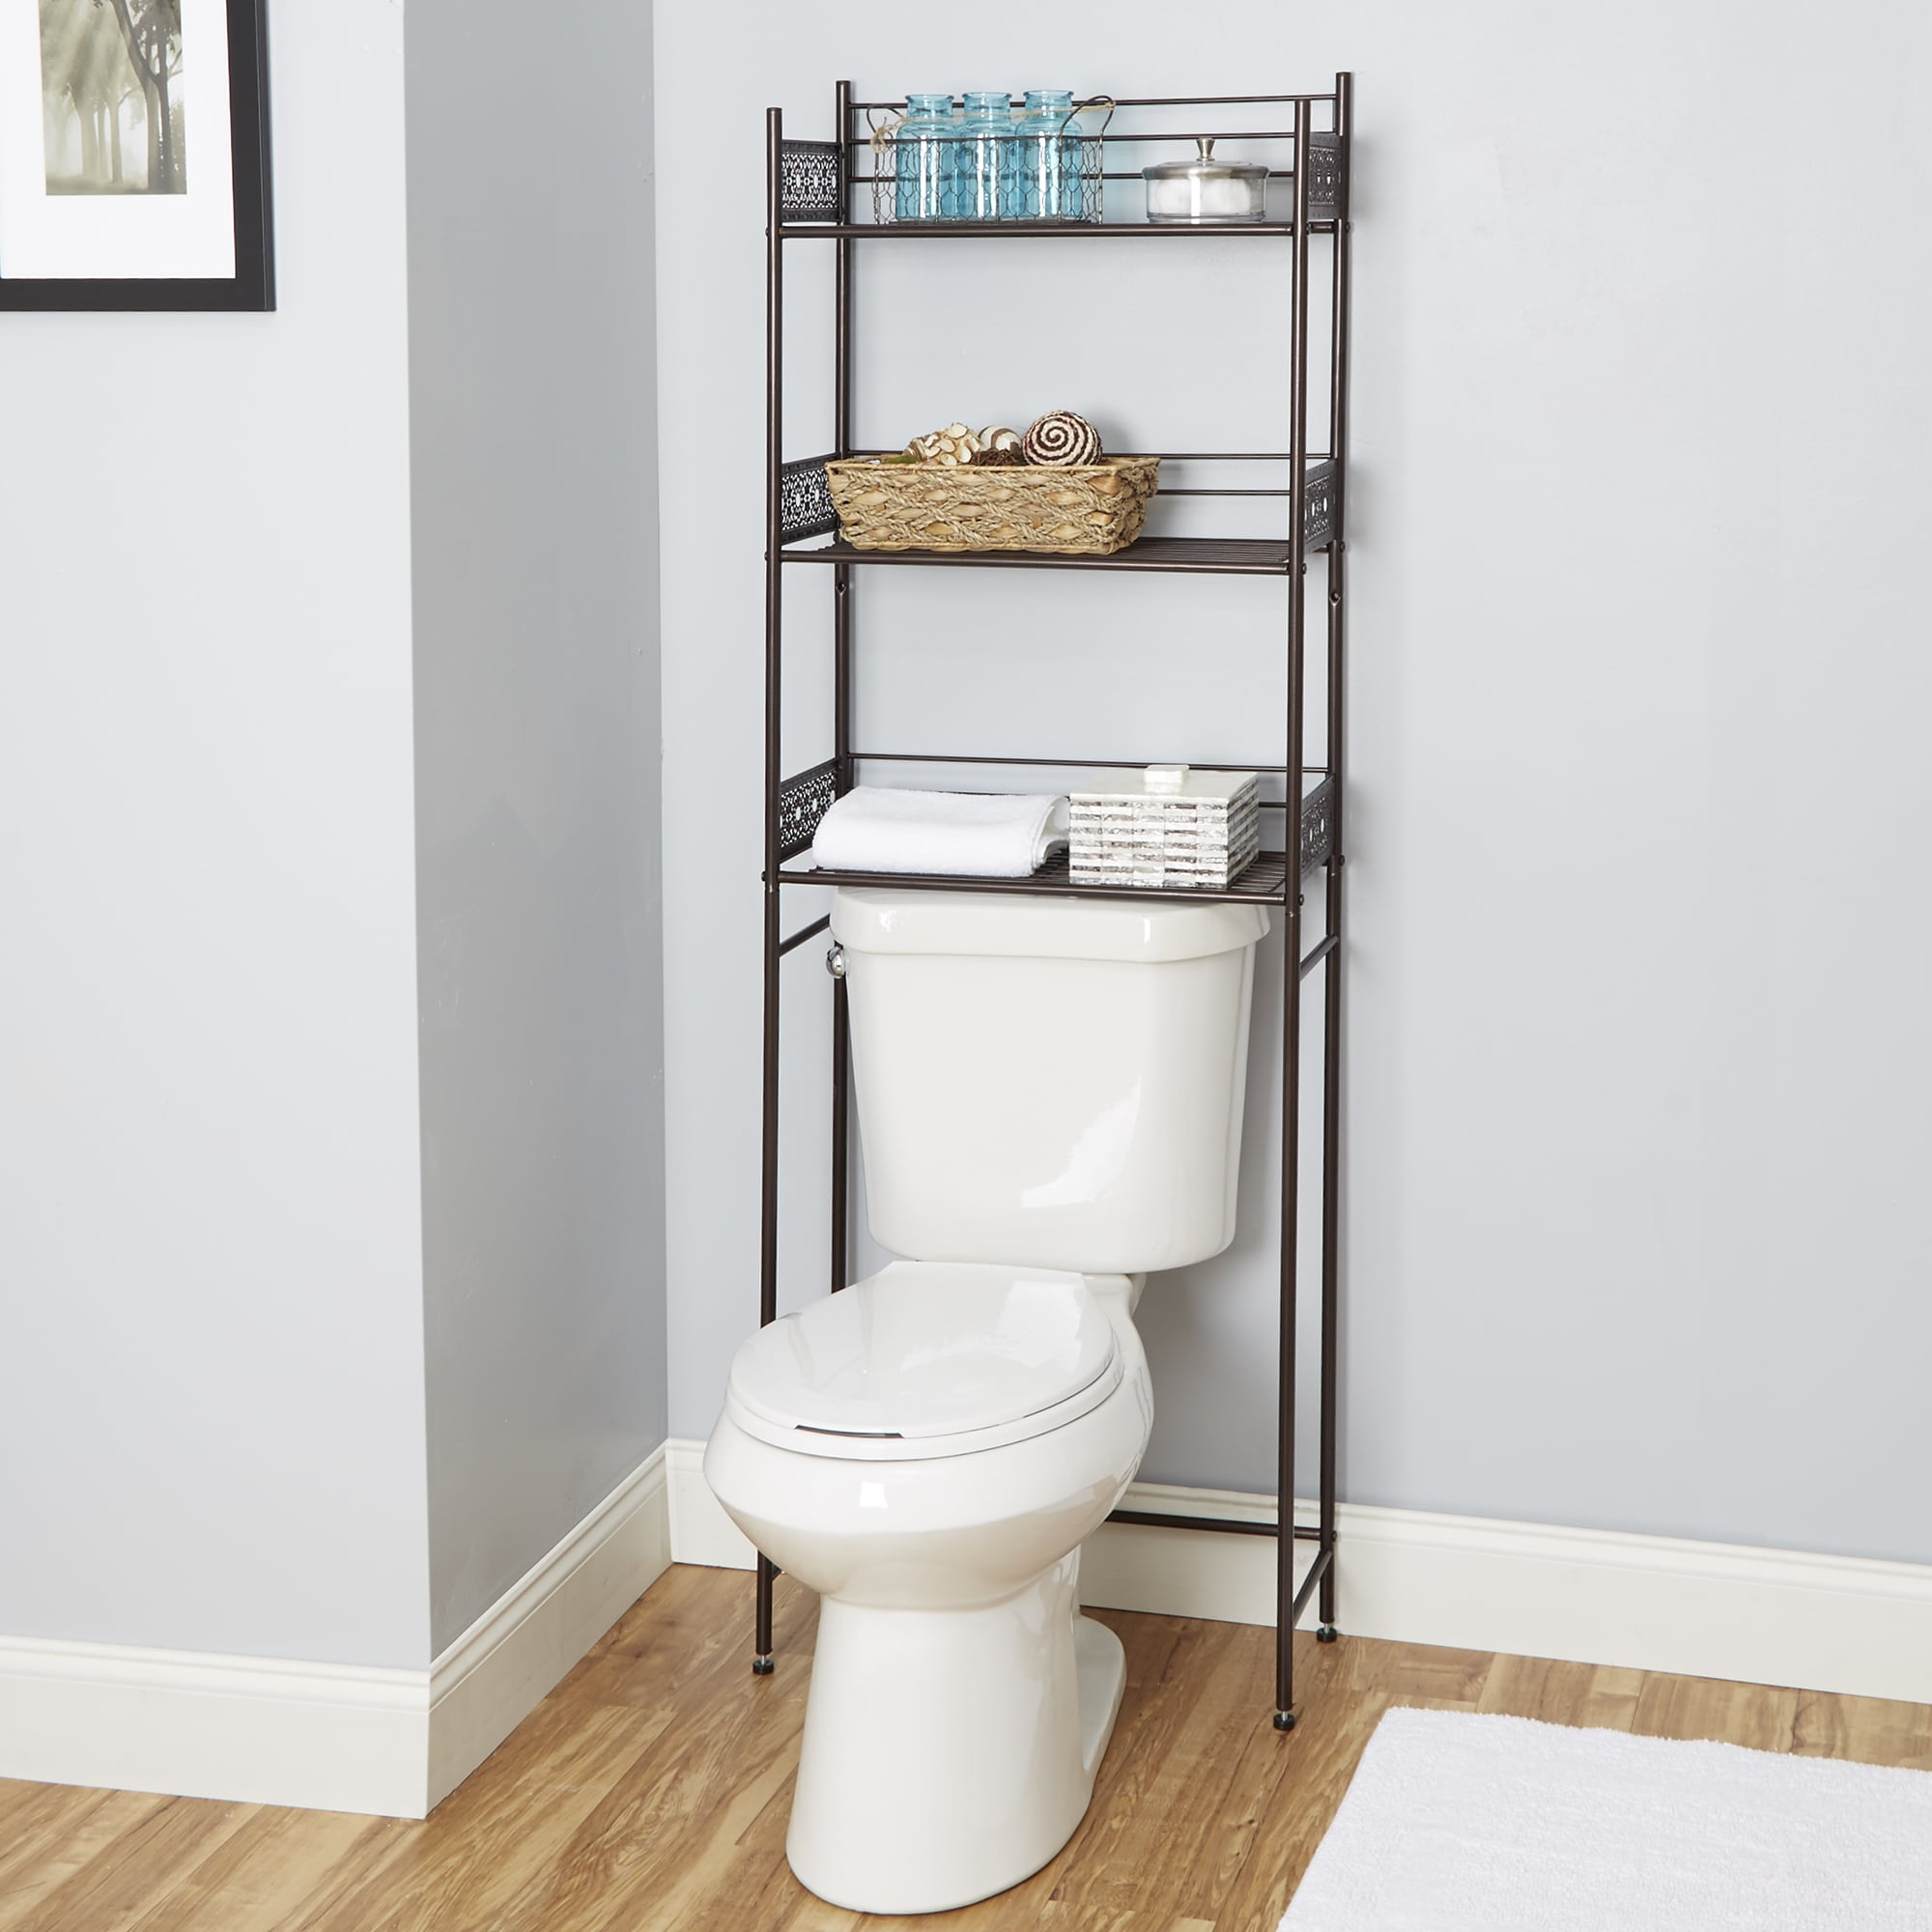 open bathroom the spacesaver toilet home white zenna over shelf med